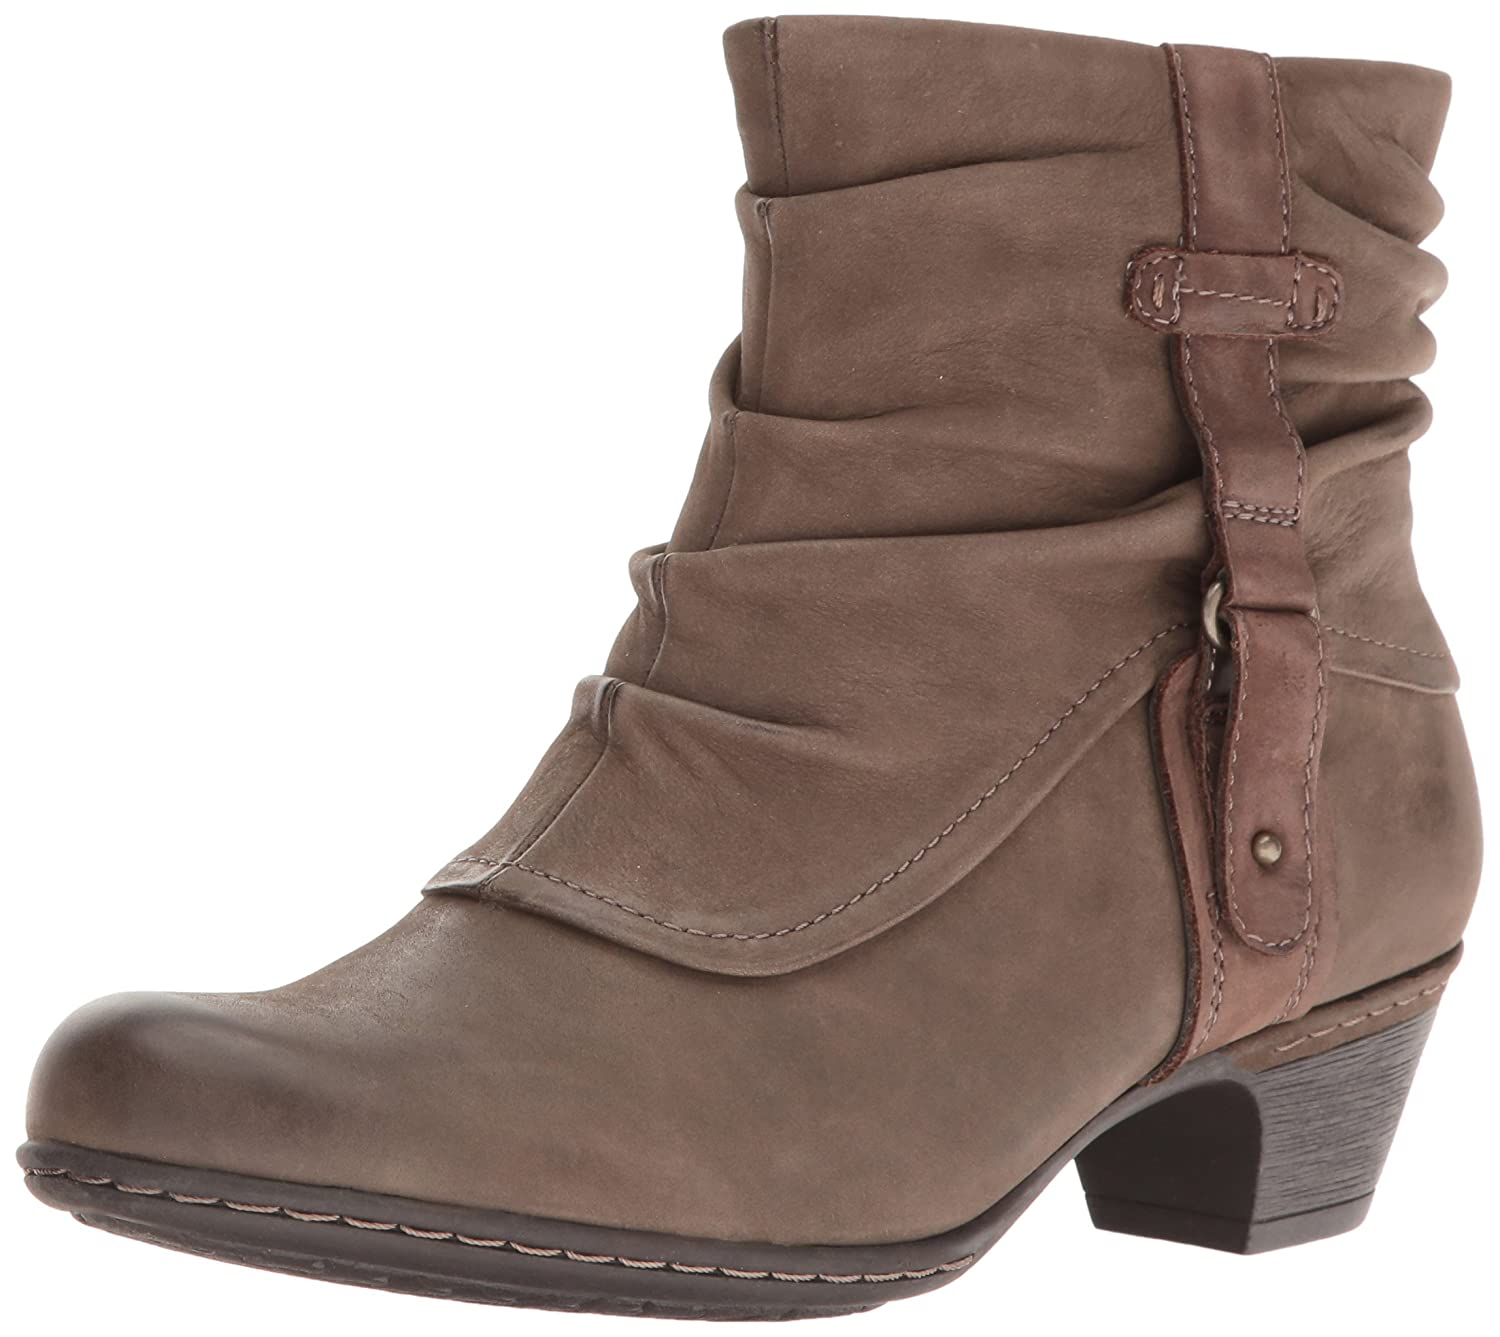 Cobb Hill Rockport Women's Alexandra Boot B00OKSZHK6 8.5 B(M) US|Stone